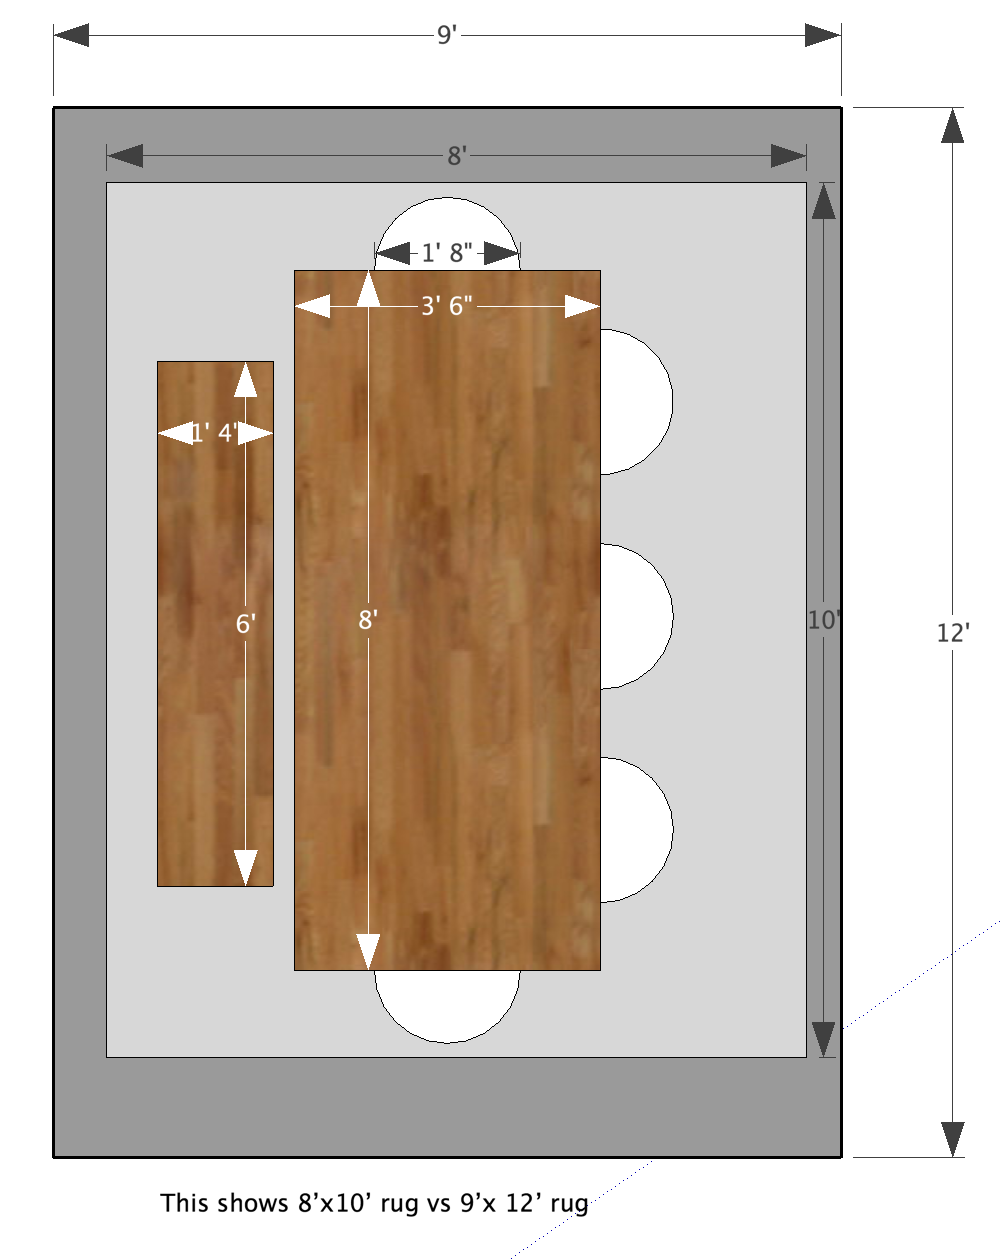 Dining Room Table Rug Layout 8 X10 Vs 9 X12 Rugs Layout Dining Room Table Locker Storage